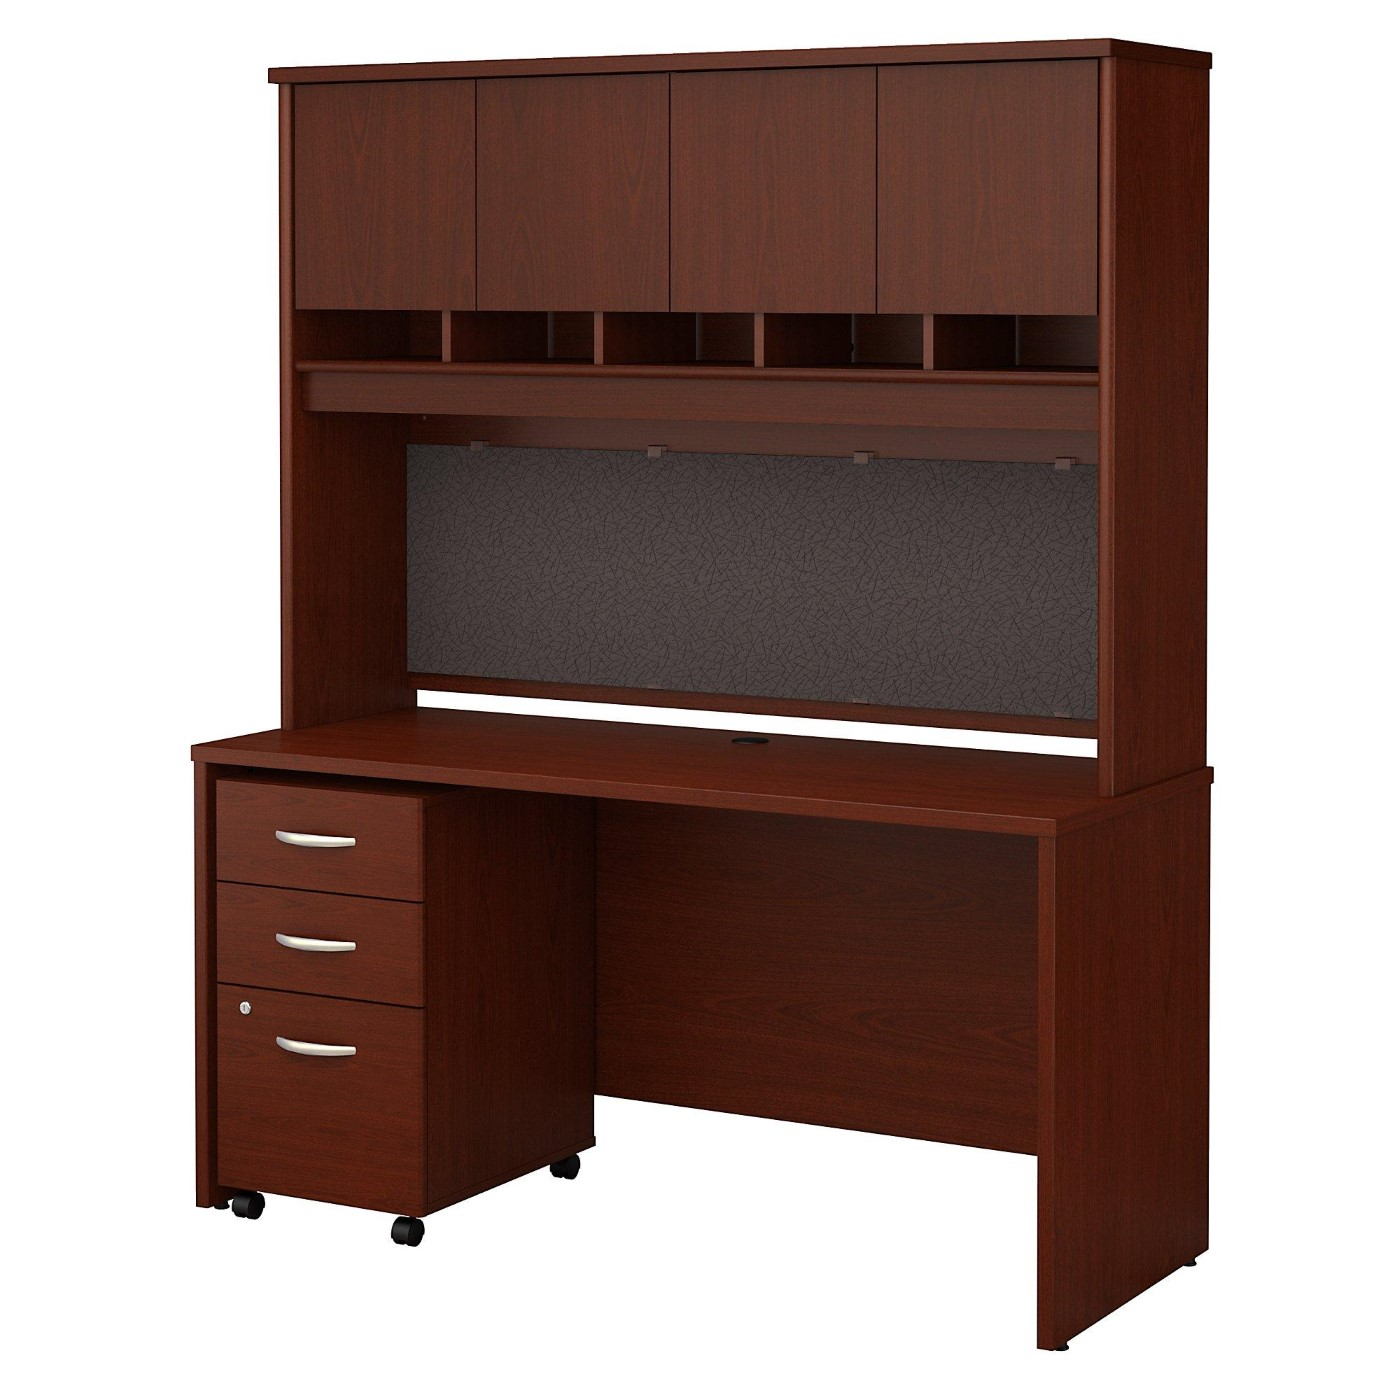 <font color=#c60><b>BUSH BUSINESS FURNITURE SERIES C 60W X 24D OFFICE DESK WITH HUTCH AND MOBILE FILE CABINET. FREE SHIPPING</font></b>